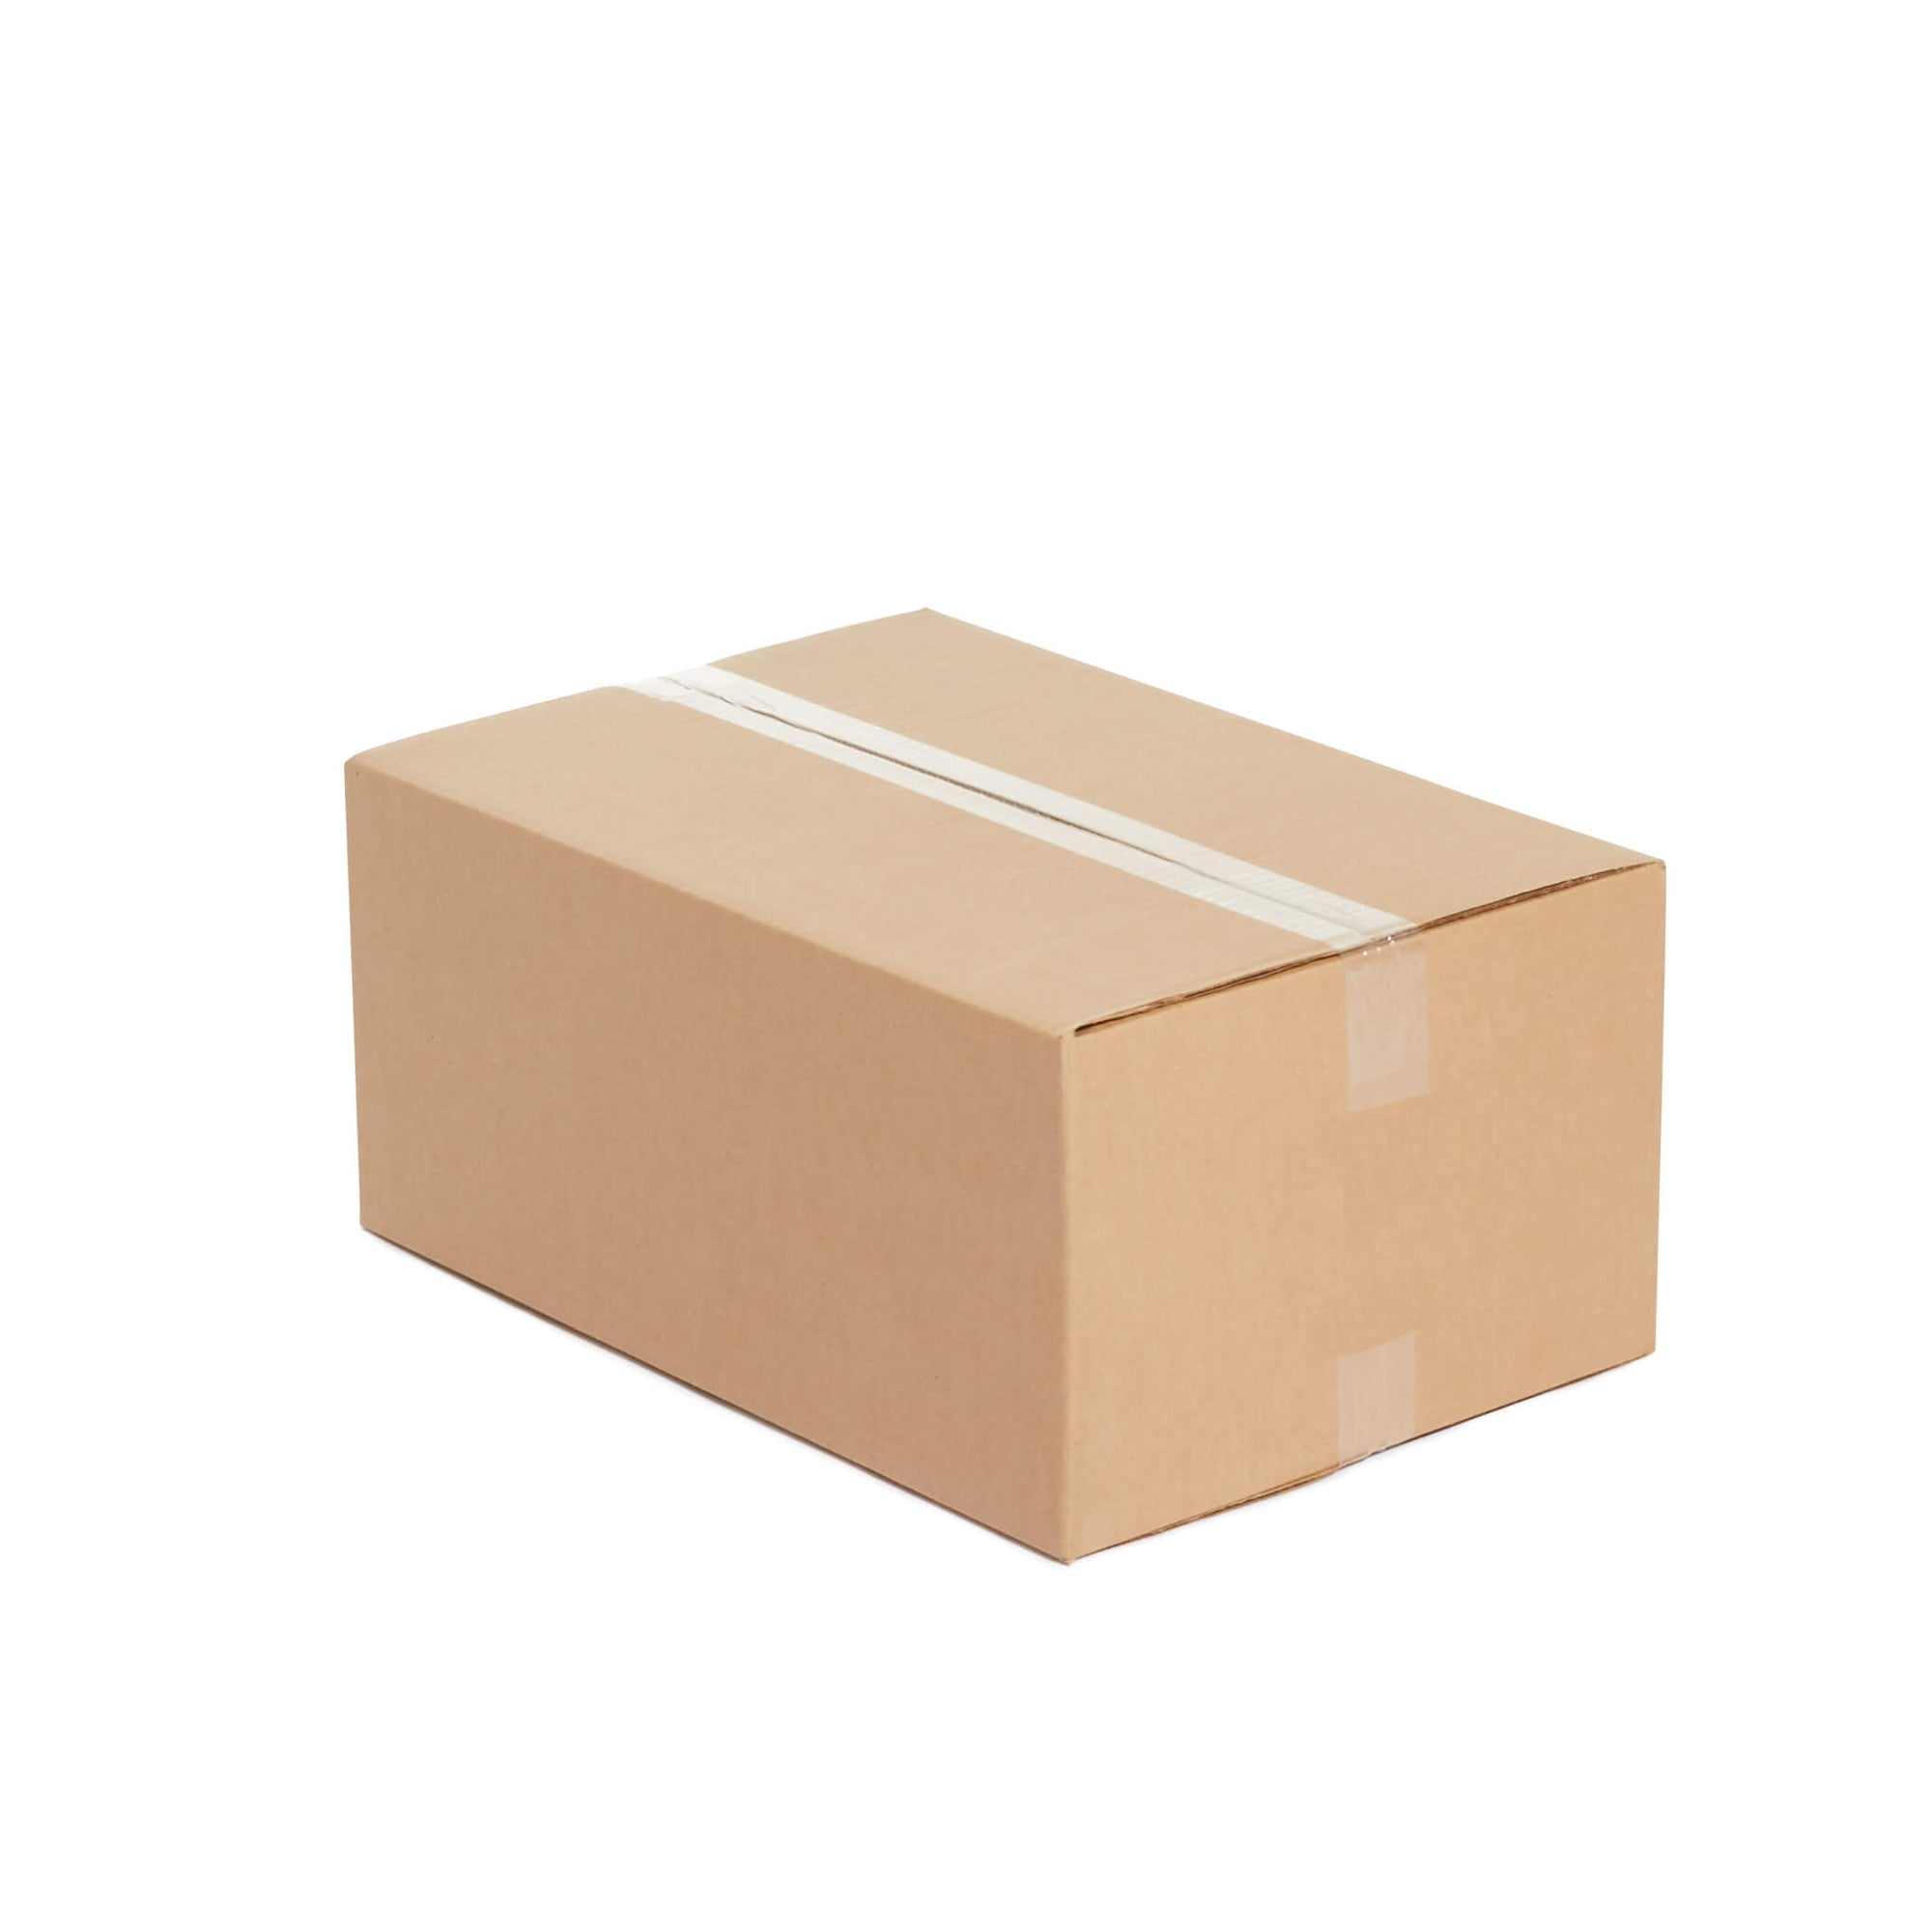 Electronic Shipping Box - 21″ x 14″ x 9″ - Packing R Us Moving Packing Shipping Storing Boxes